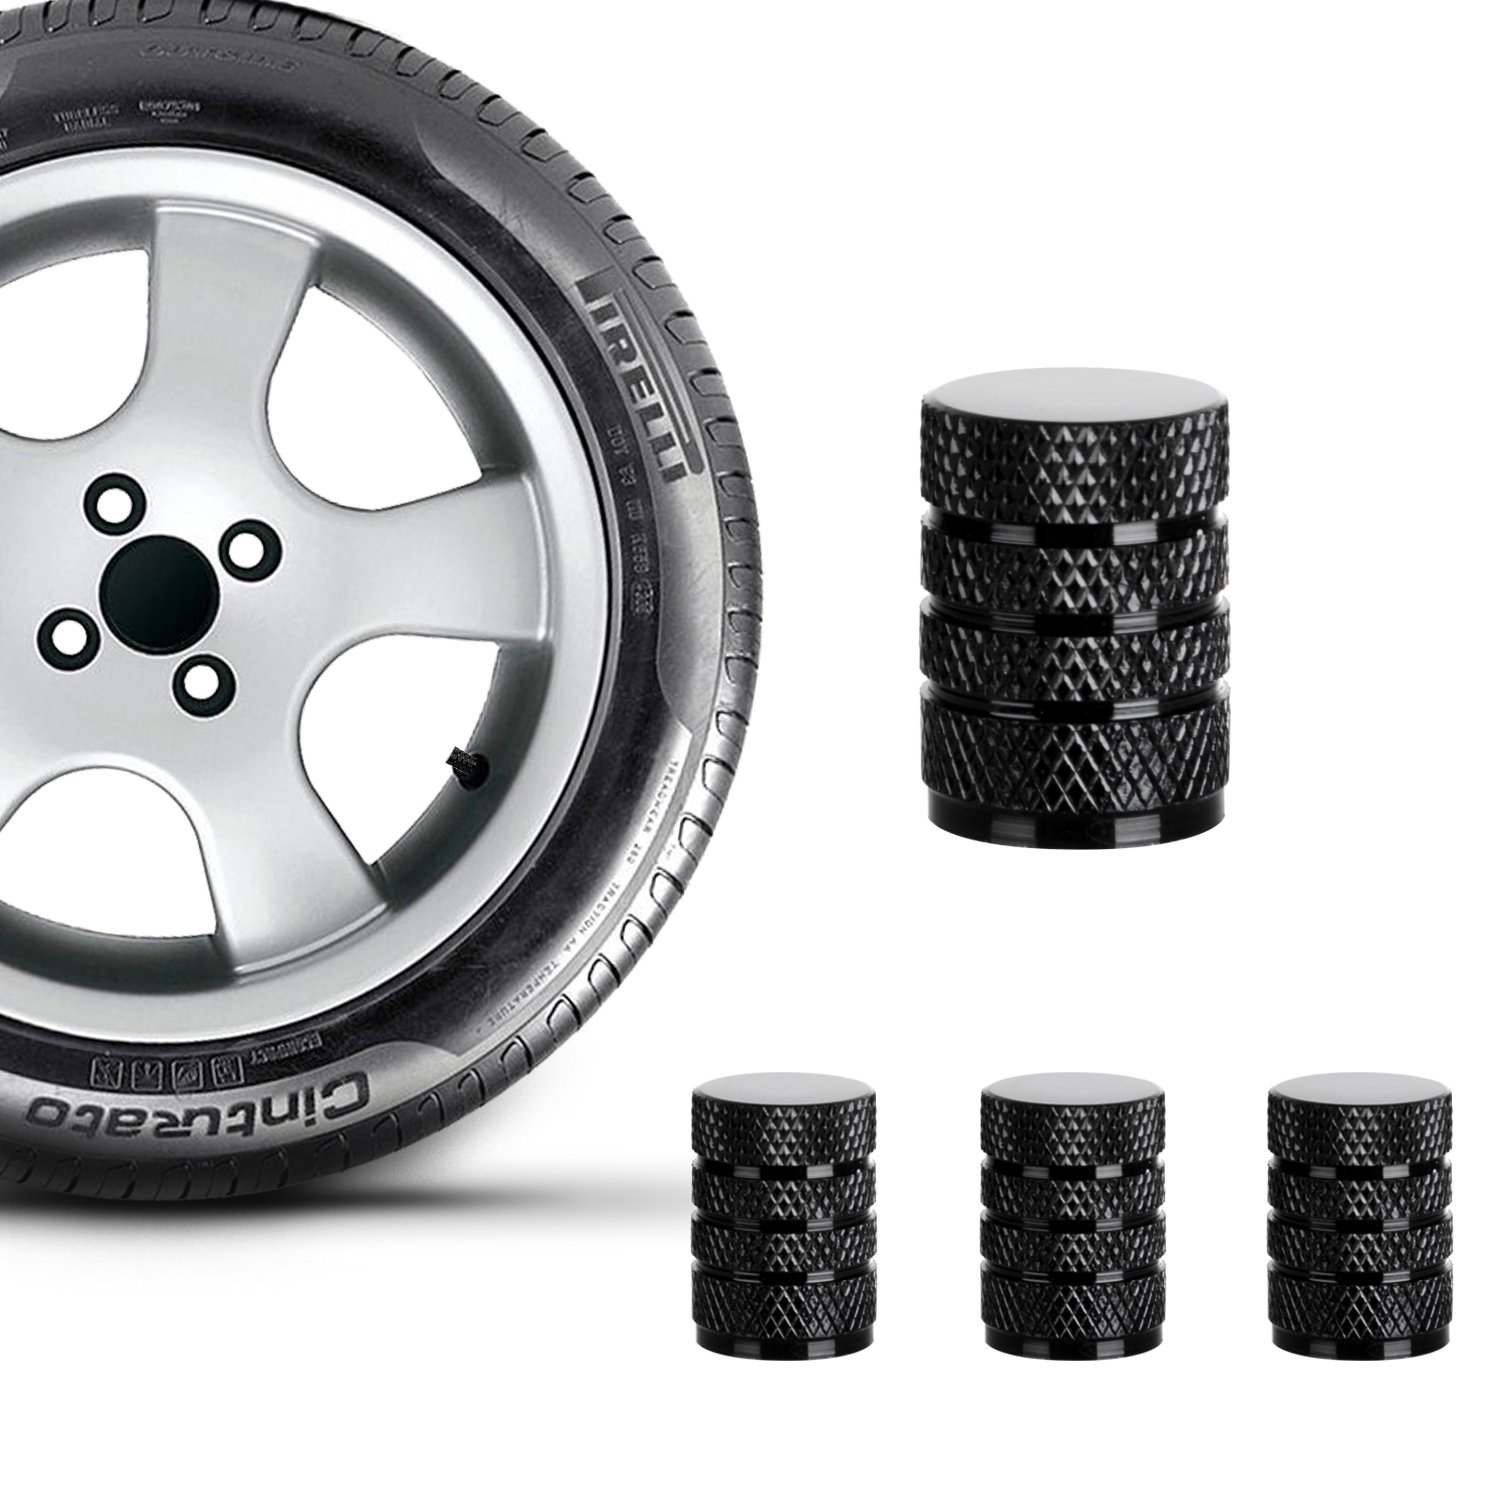 with O Rubber Seal Black Leak-Proof Air Protection Heavy-Duty Stem Covers Outdoor N // A Universal Tire Valve Stem Caps 4 Pack Crown Style Design Light-Weight All-Weather Dust Proof